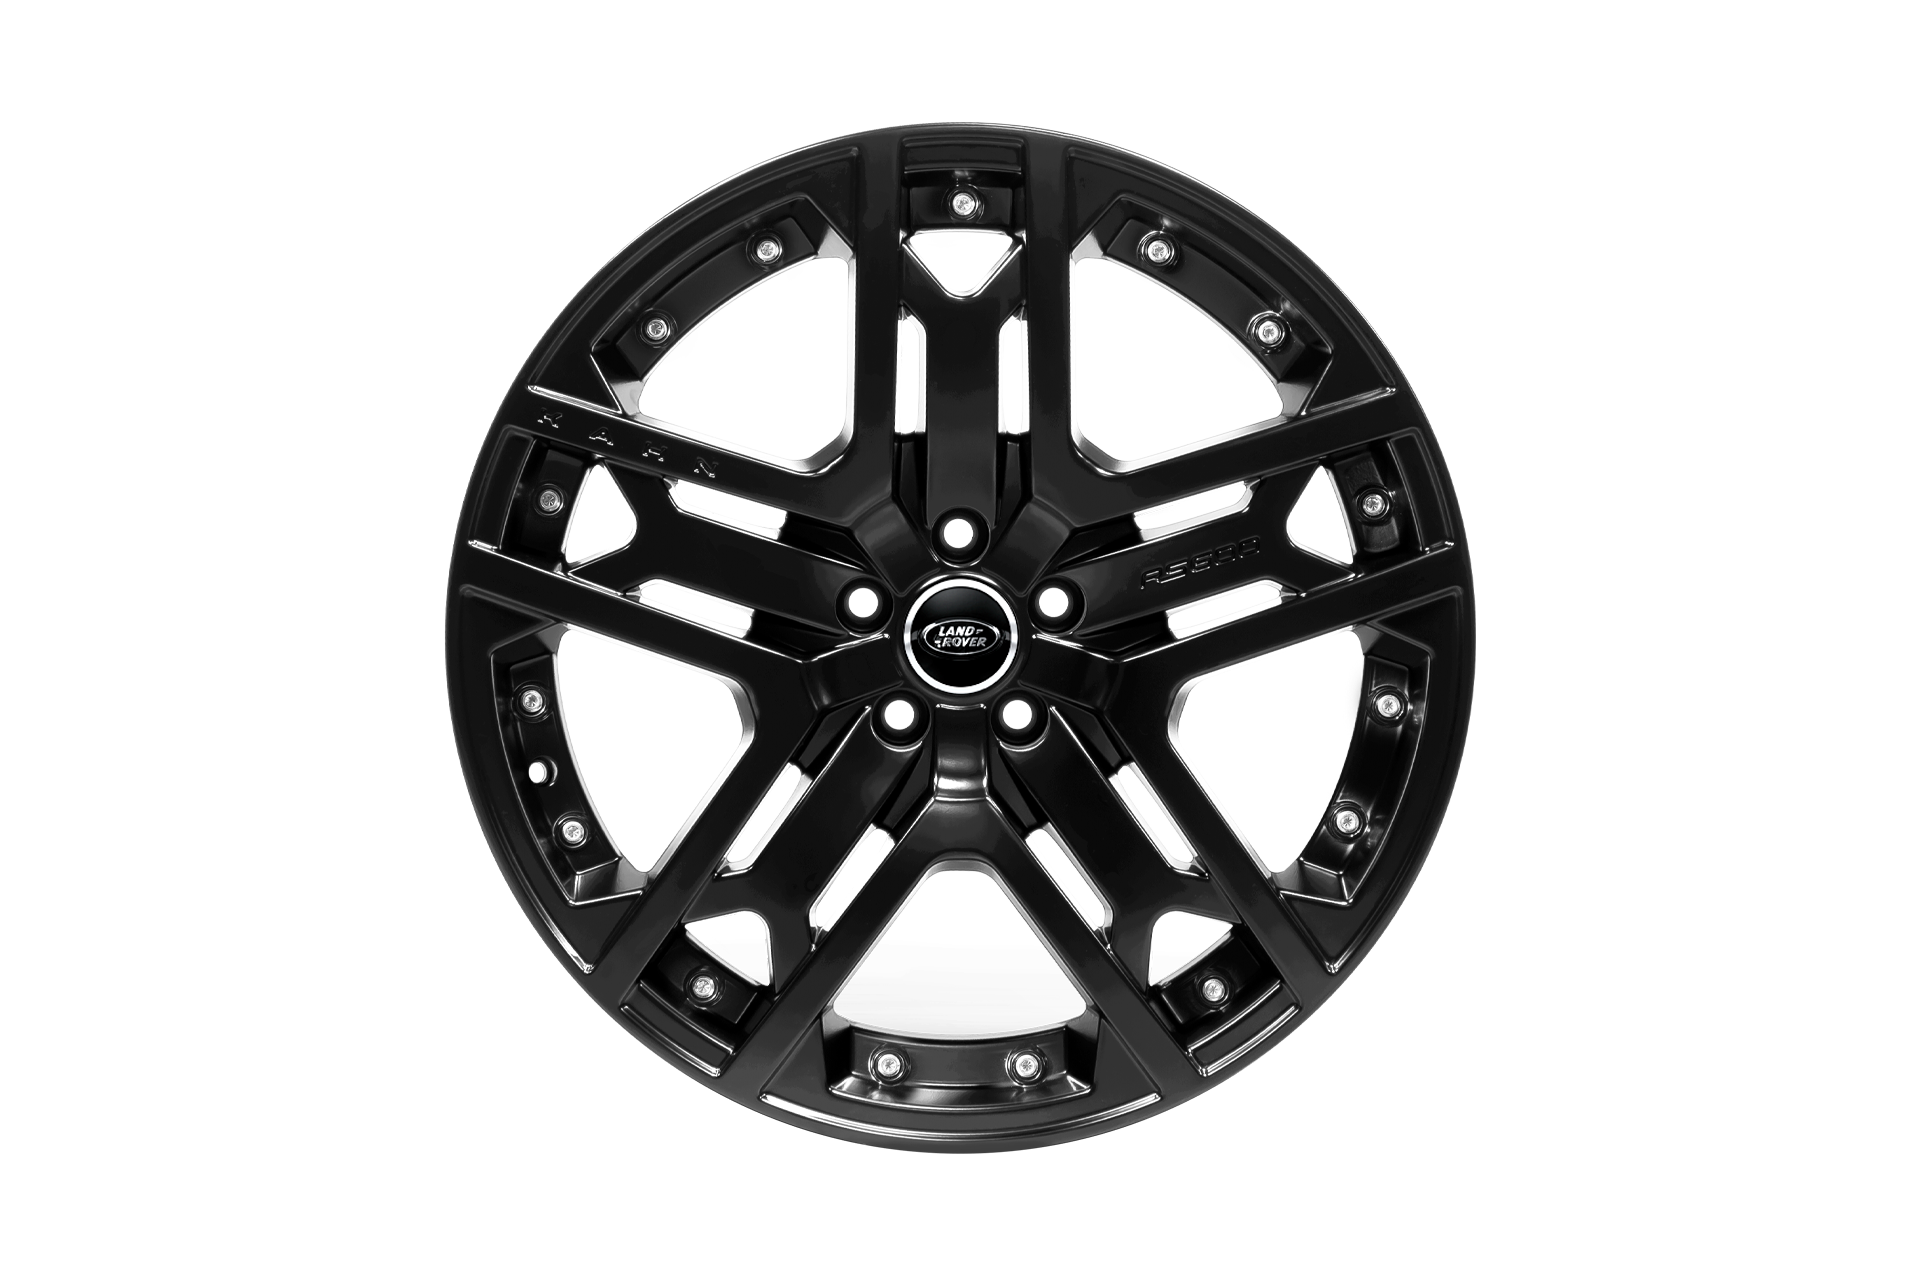 Land Rover Discovery (2004-2016) Rs600 Light Alloy Wheels by Kahn - Image 3885